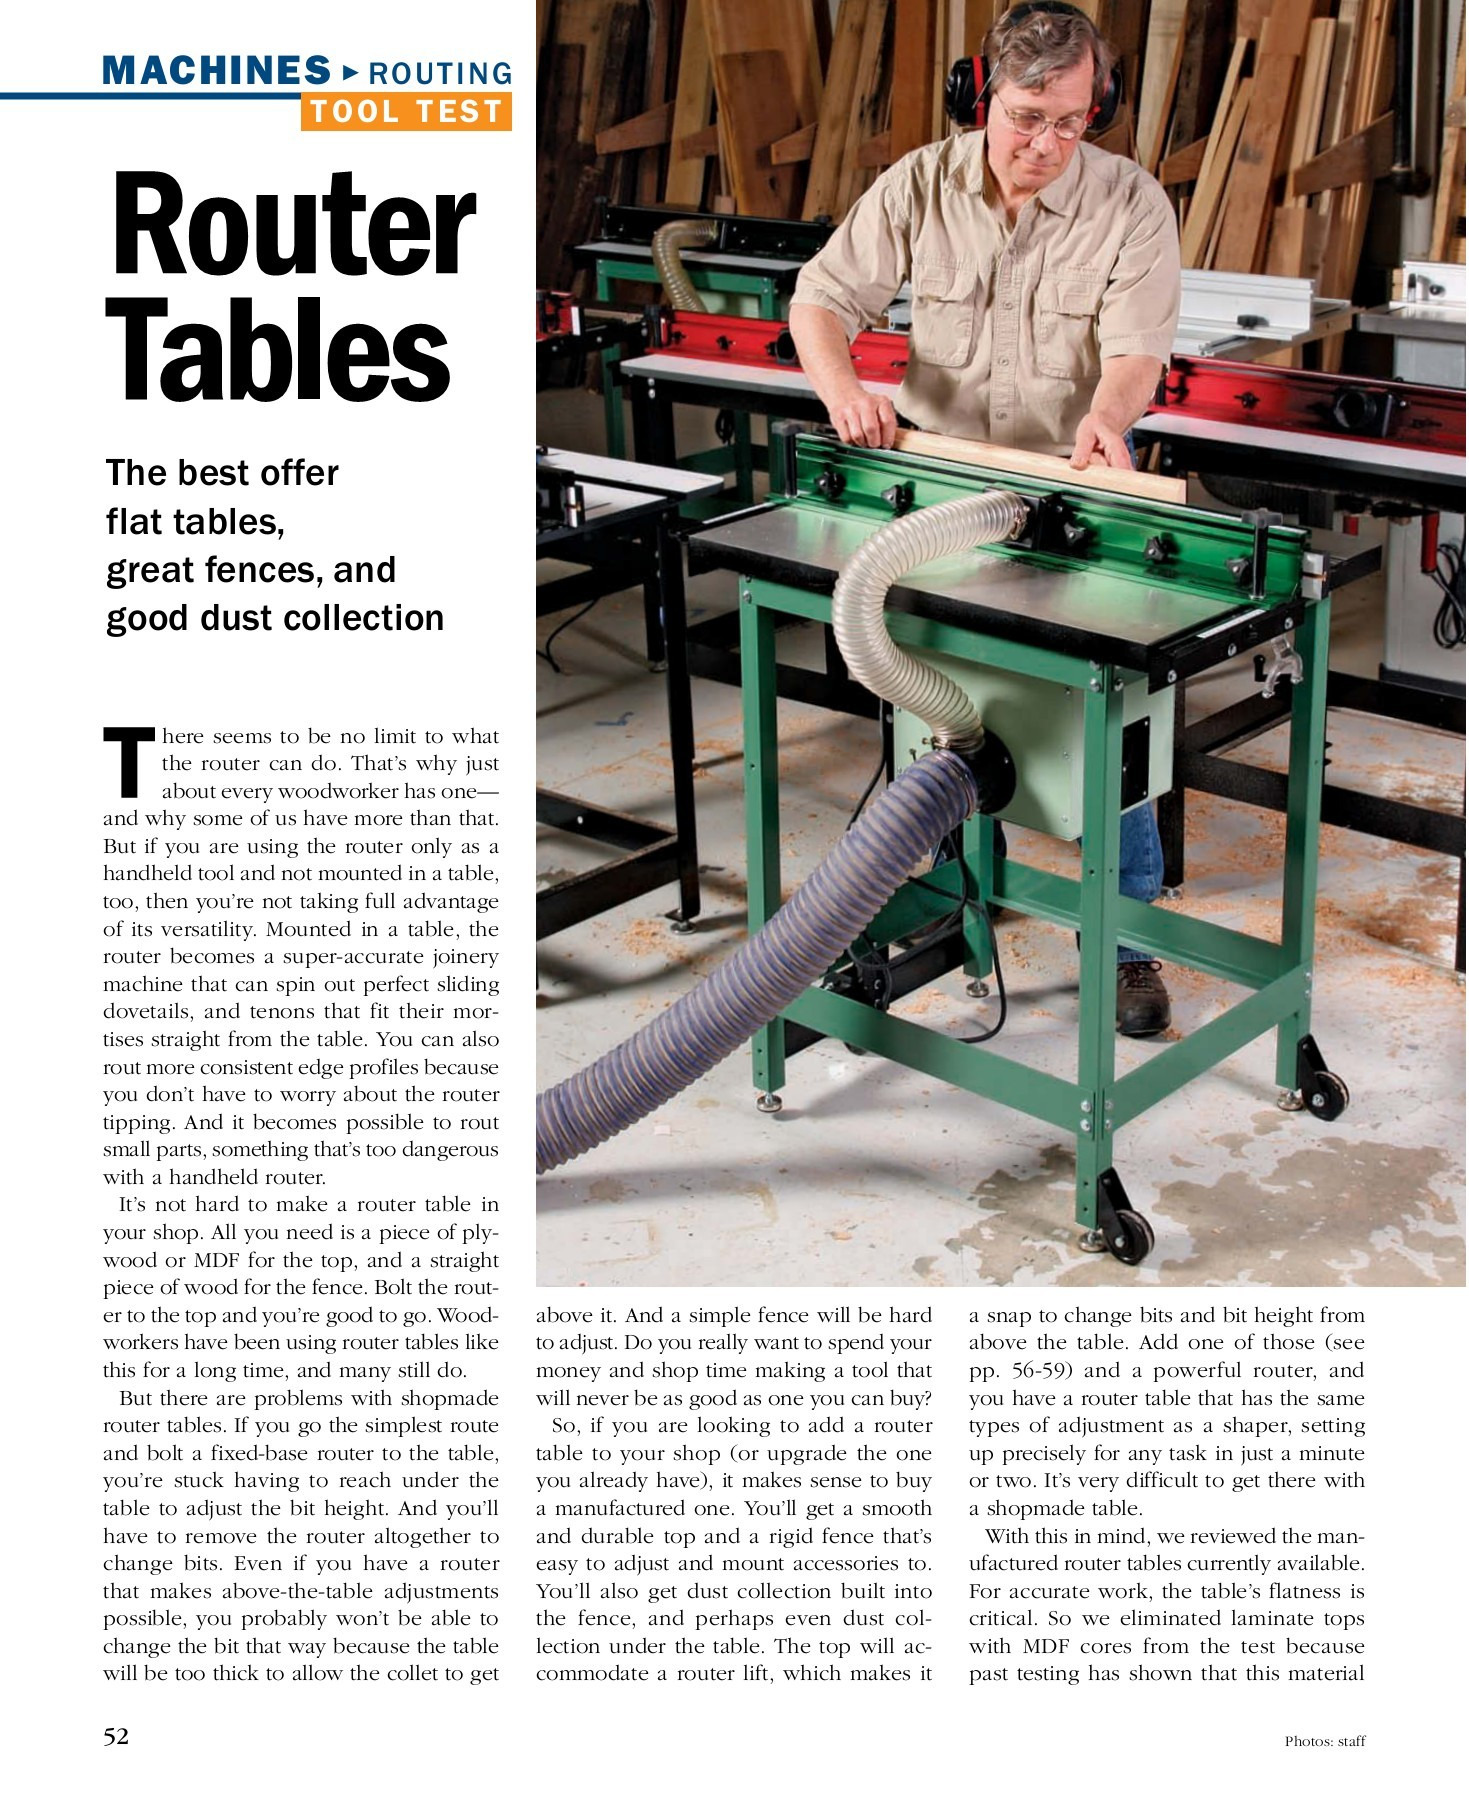 Excalibur Cast Iron Router Table Luxury Fine Woodworking S and Fine Homebuilding S 2014 tool Guide